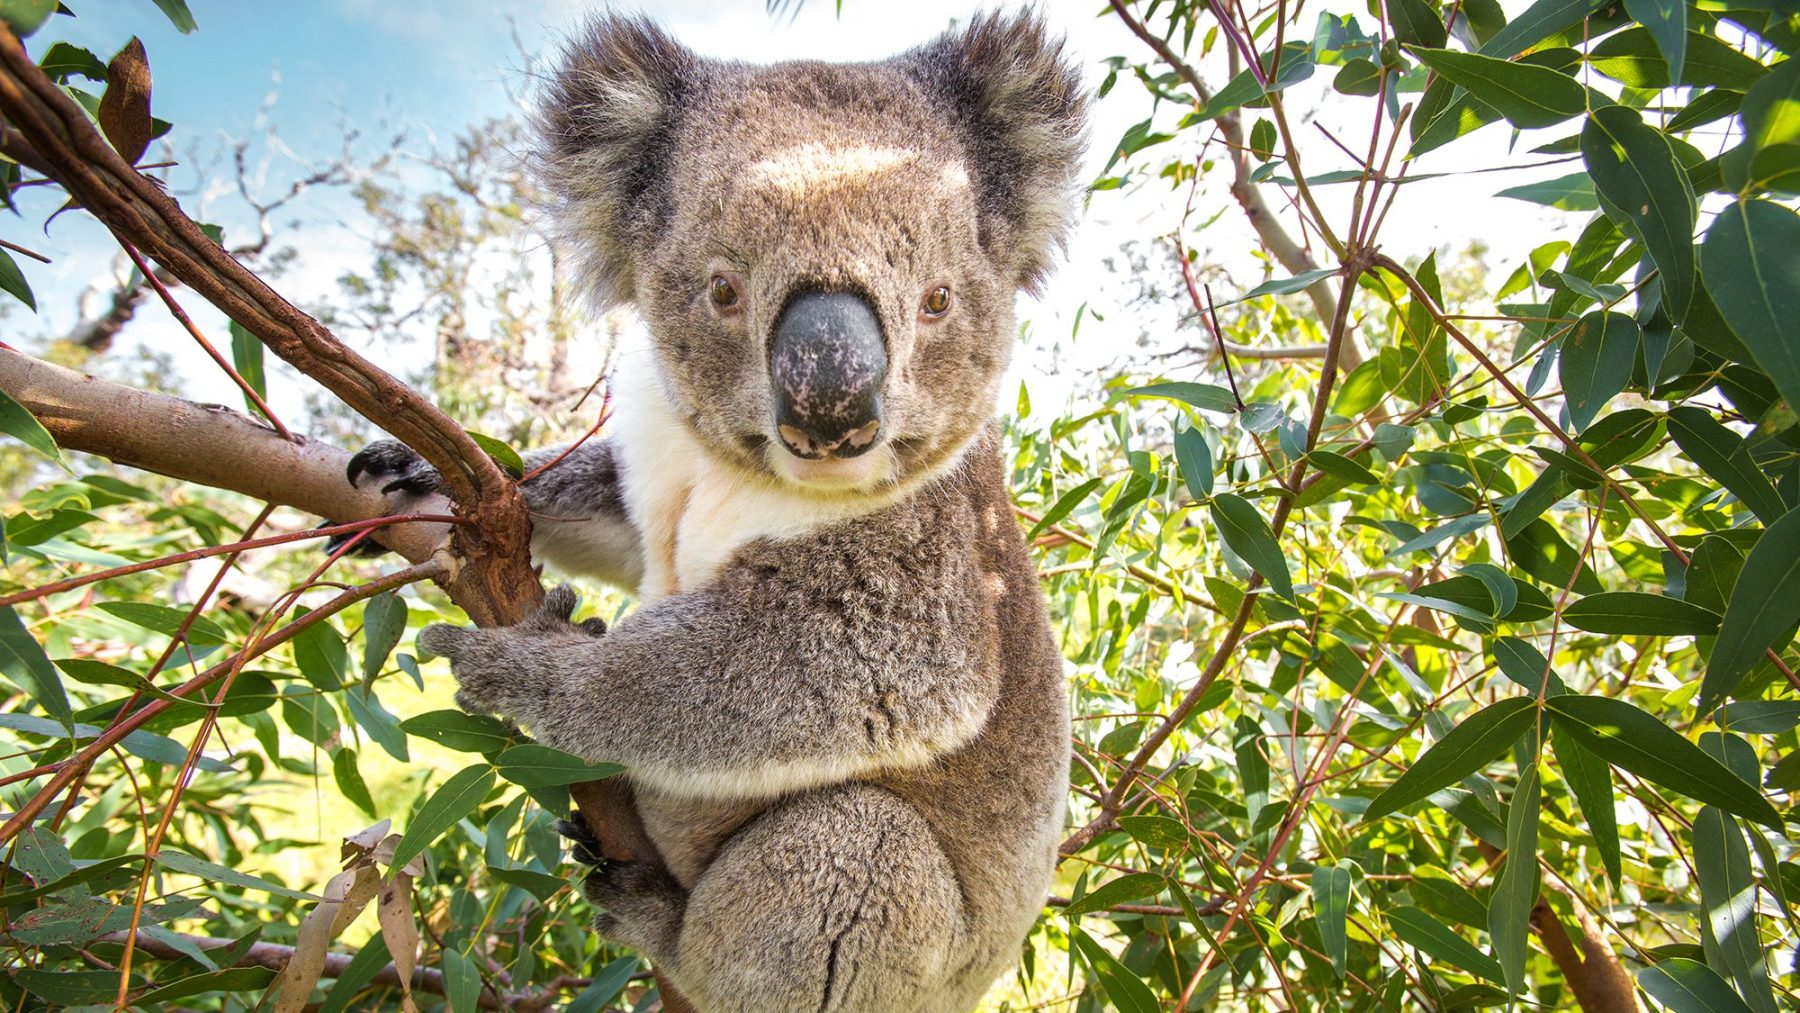 The koala's days are numbered